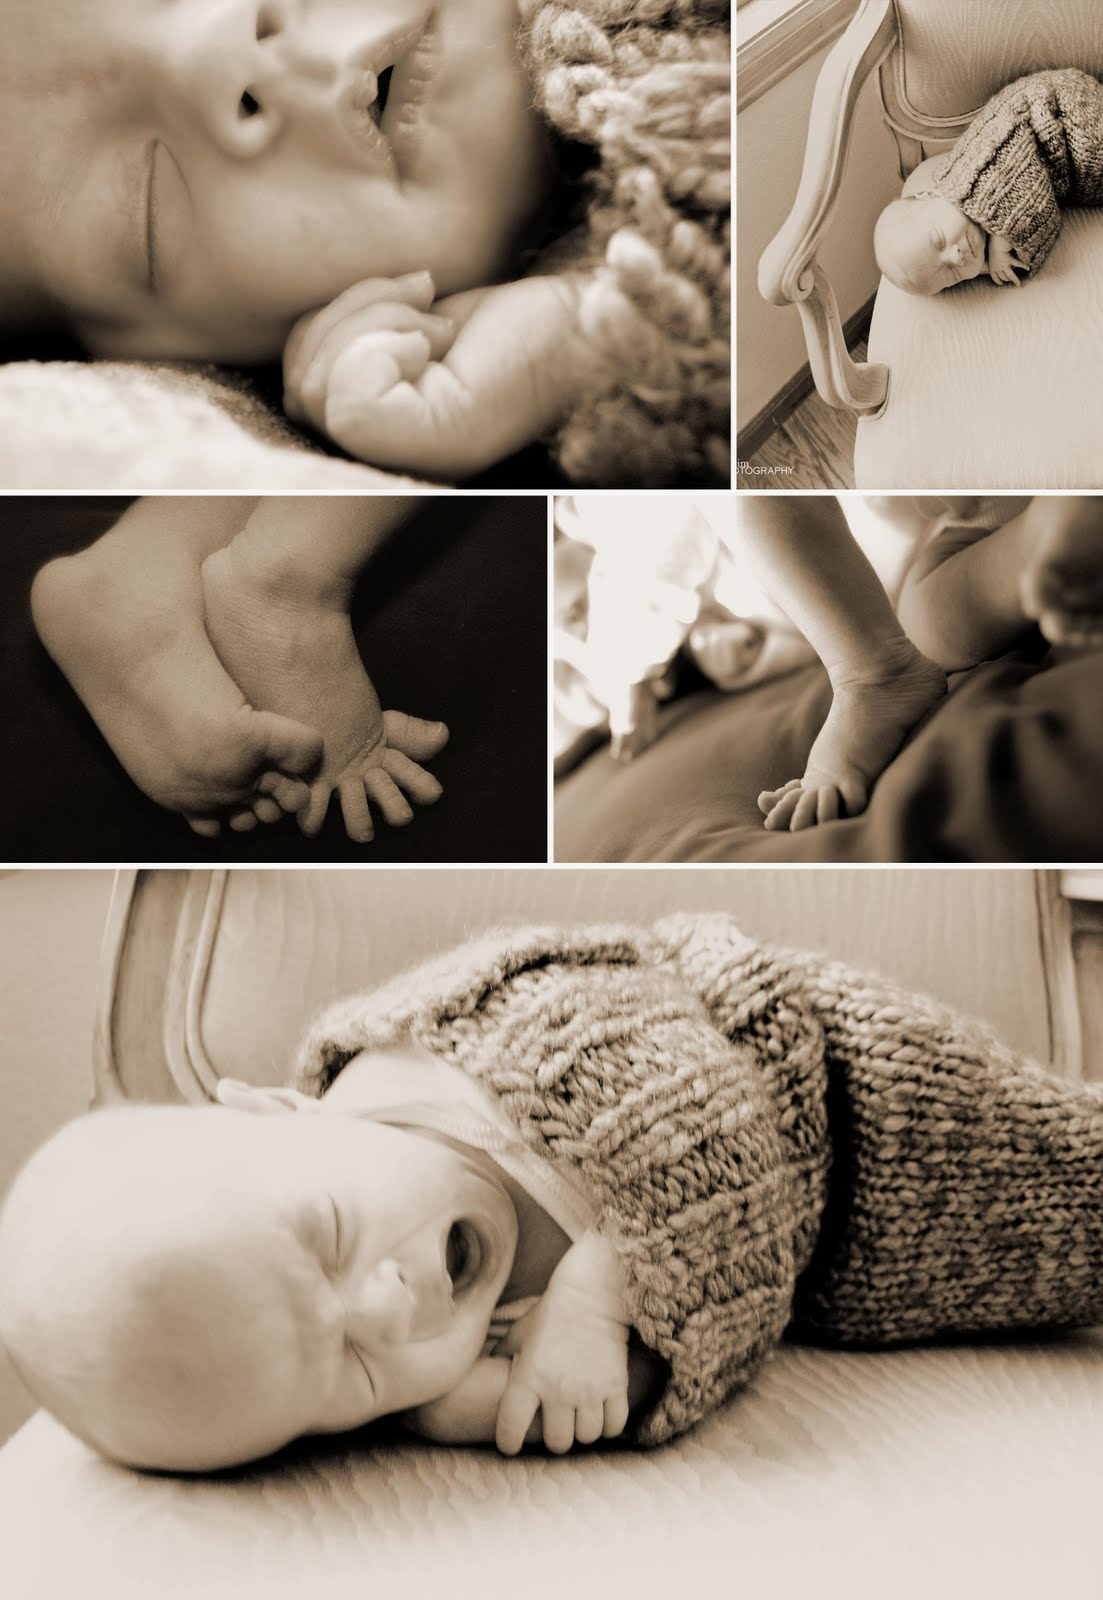 How to photograph newborns and babies allenaim photography